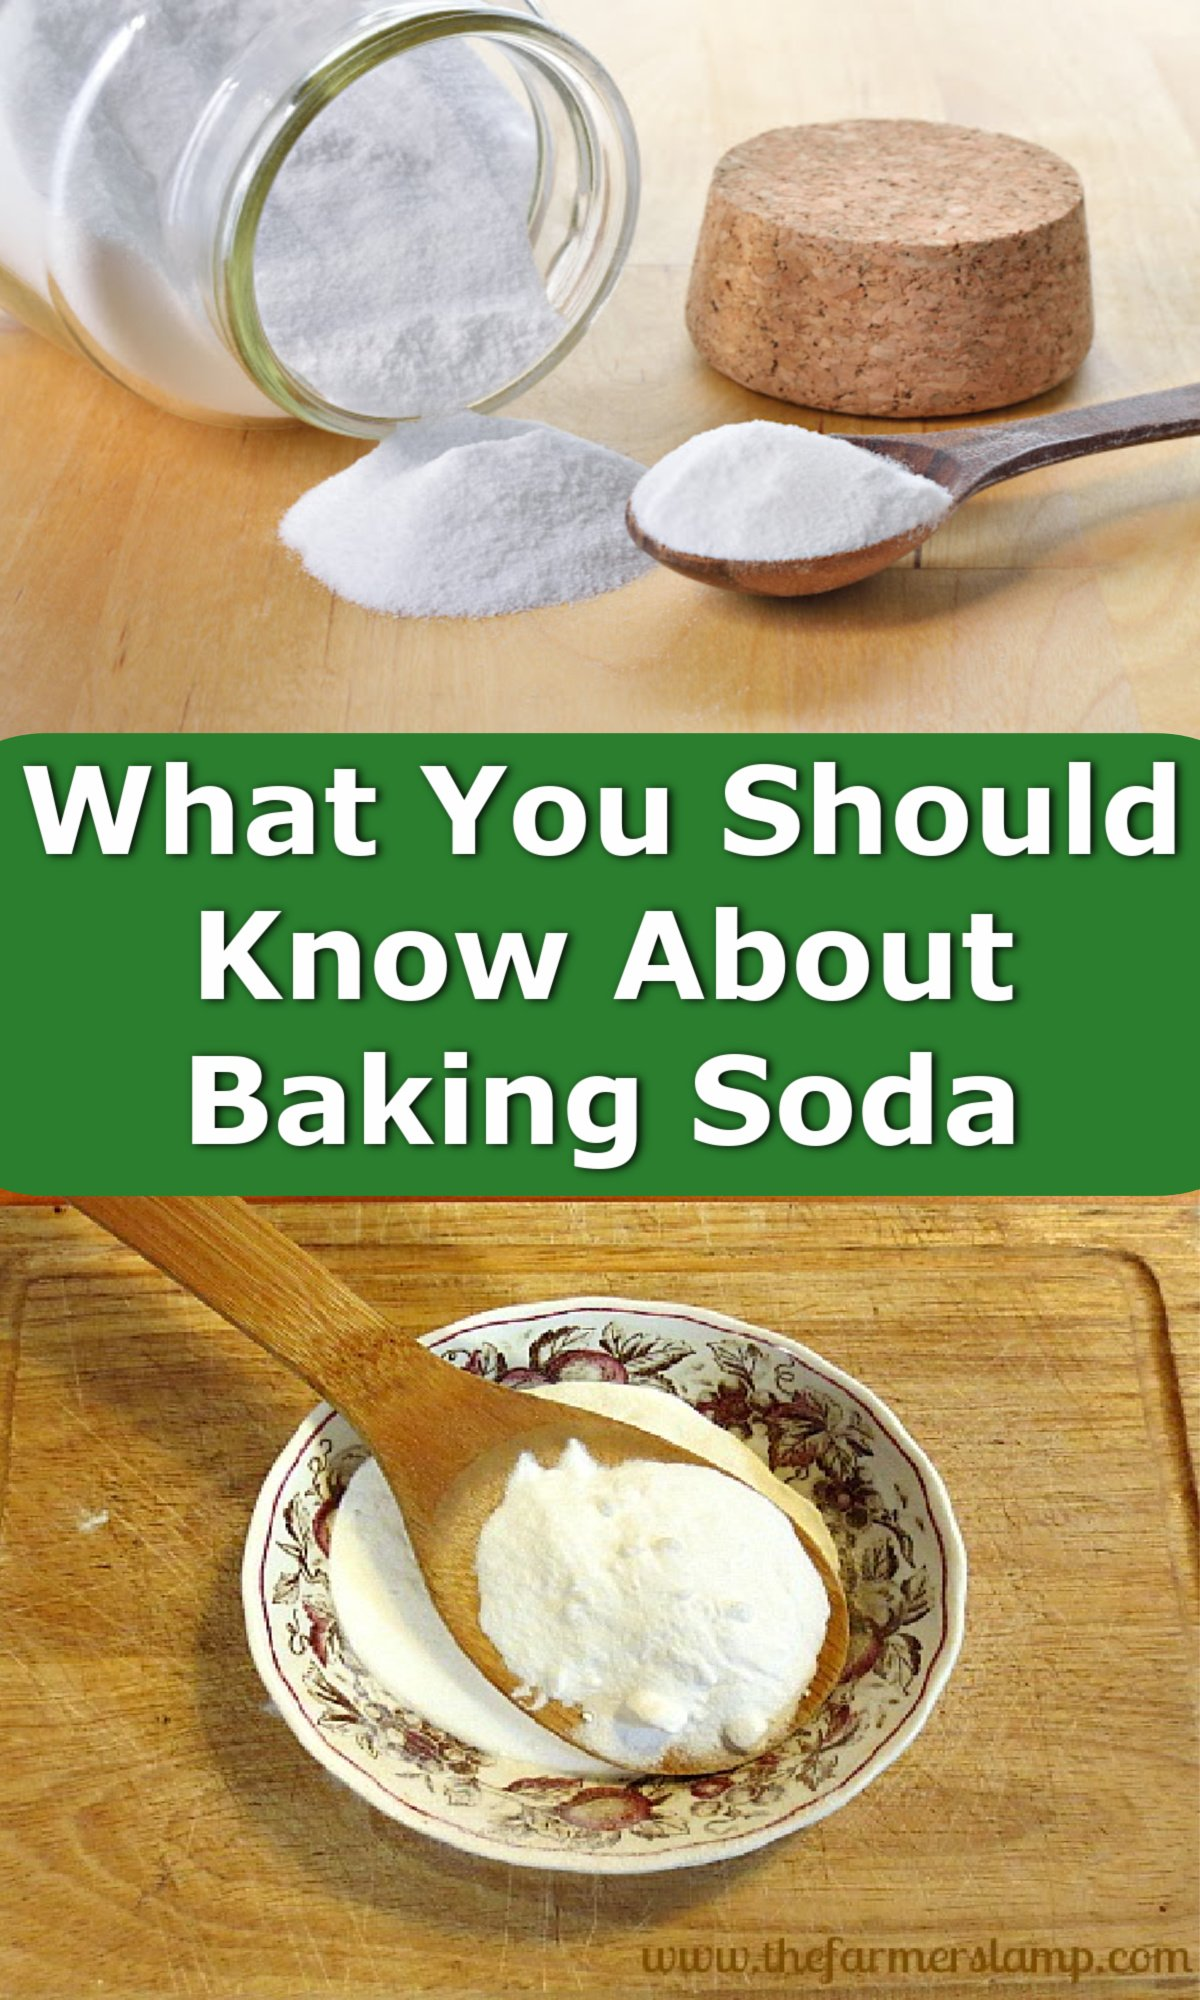 What you should know about baking soda pin - baking soda in jar and bowl